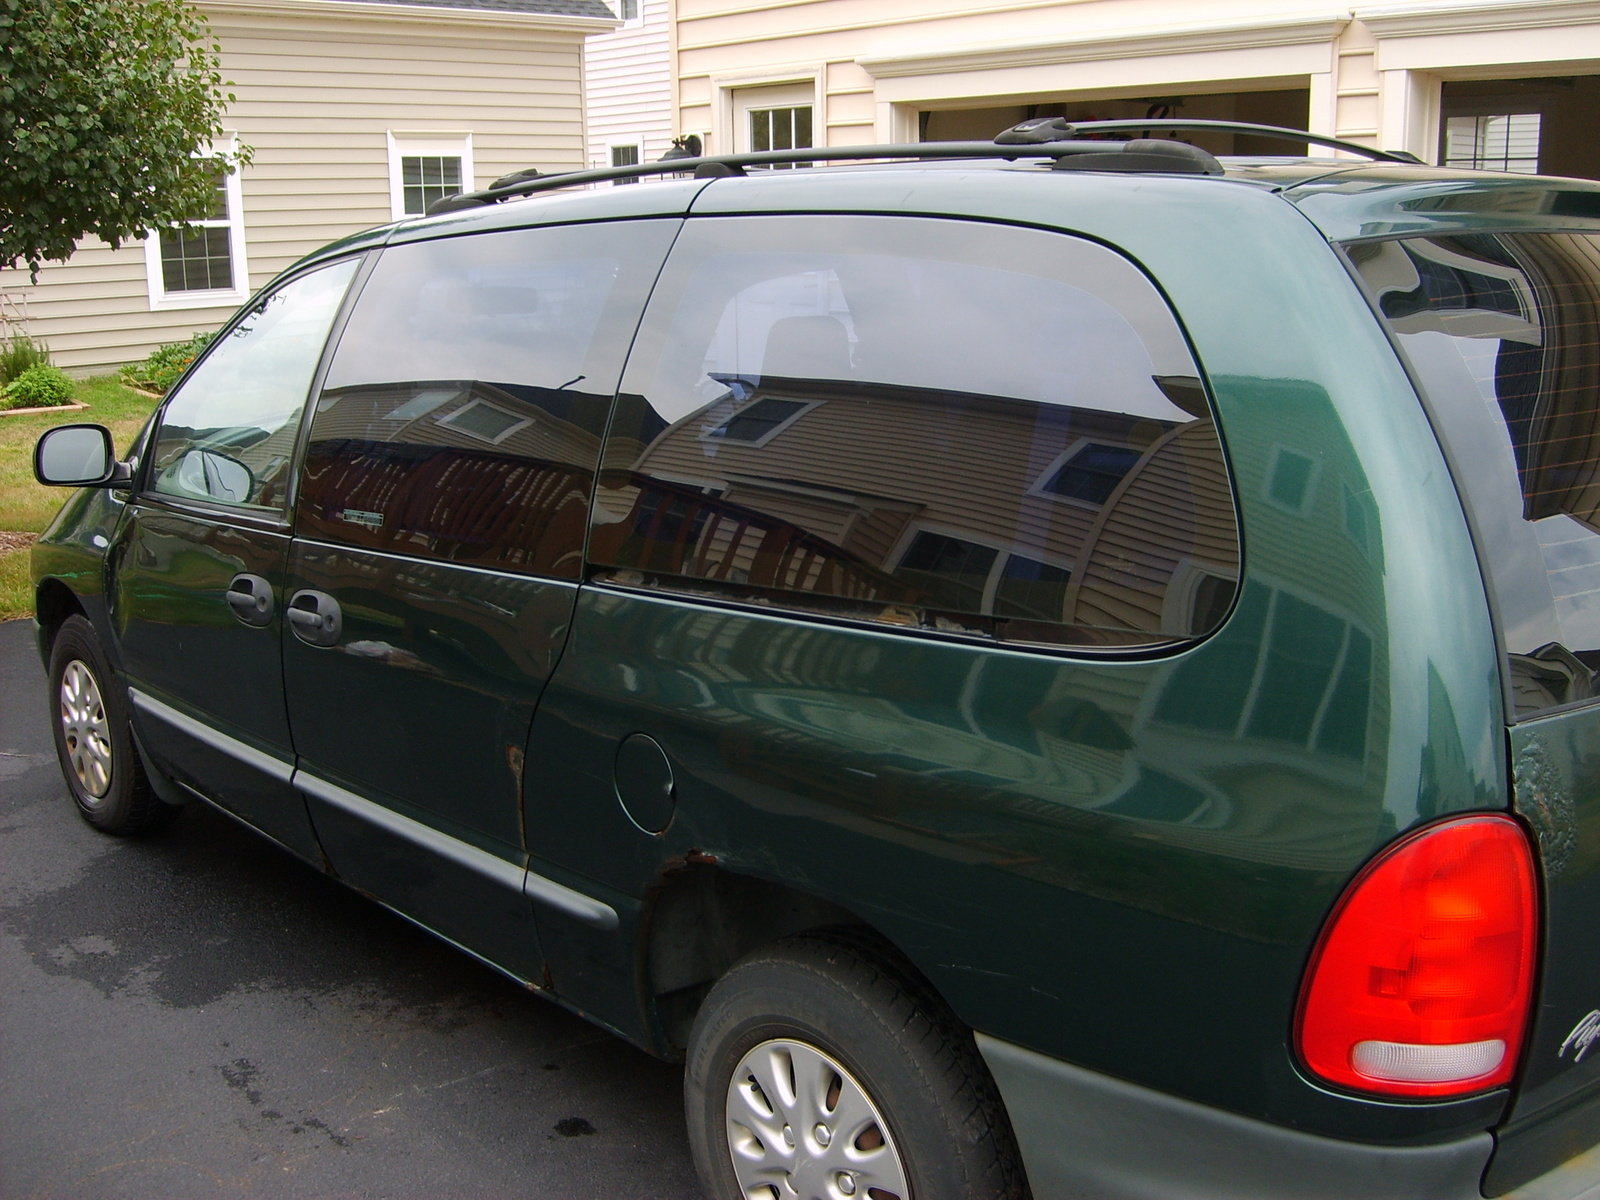 1999 plymouth grand voyager pictures cargurus. Black Bedroom Furniture Sets. Home Design Ideas